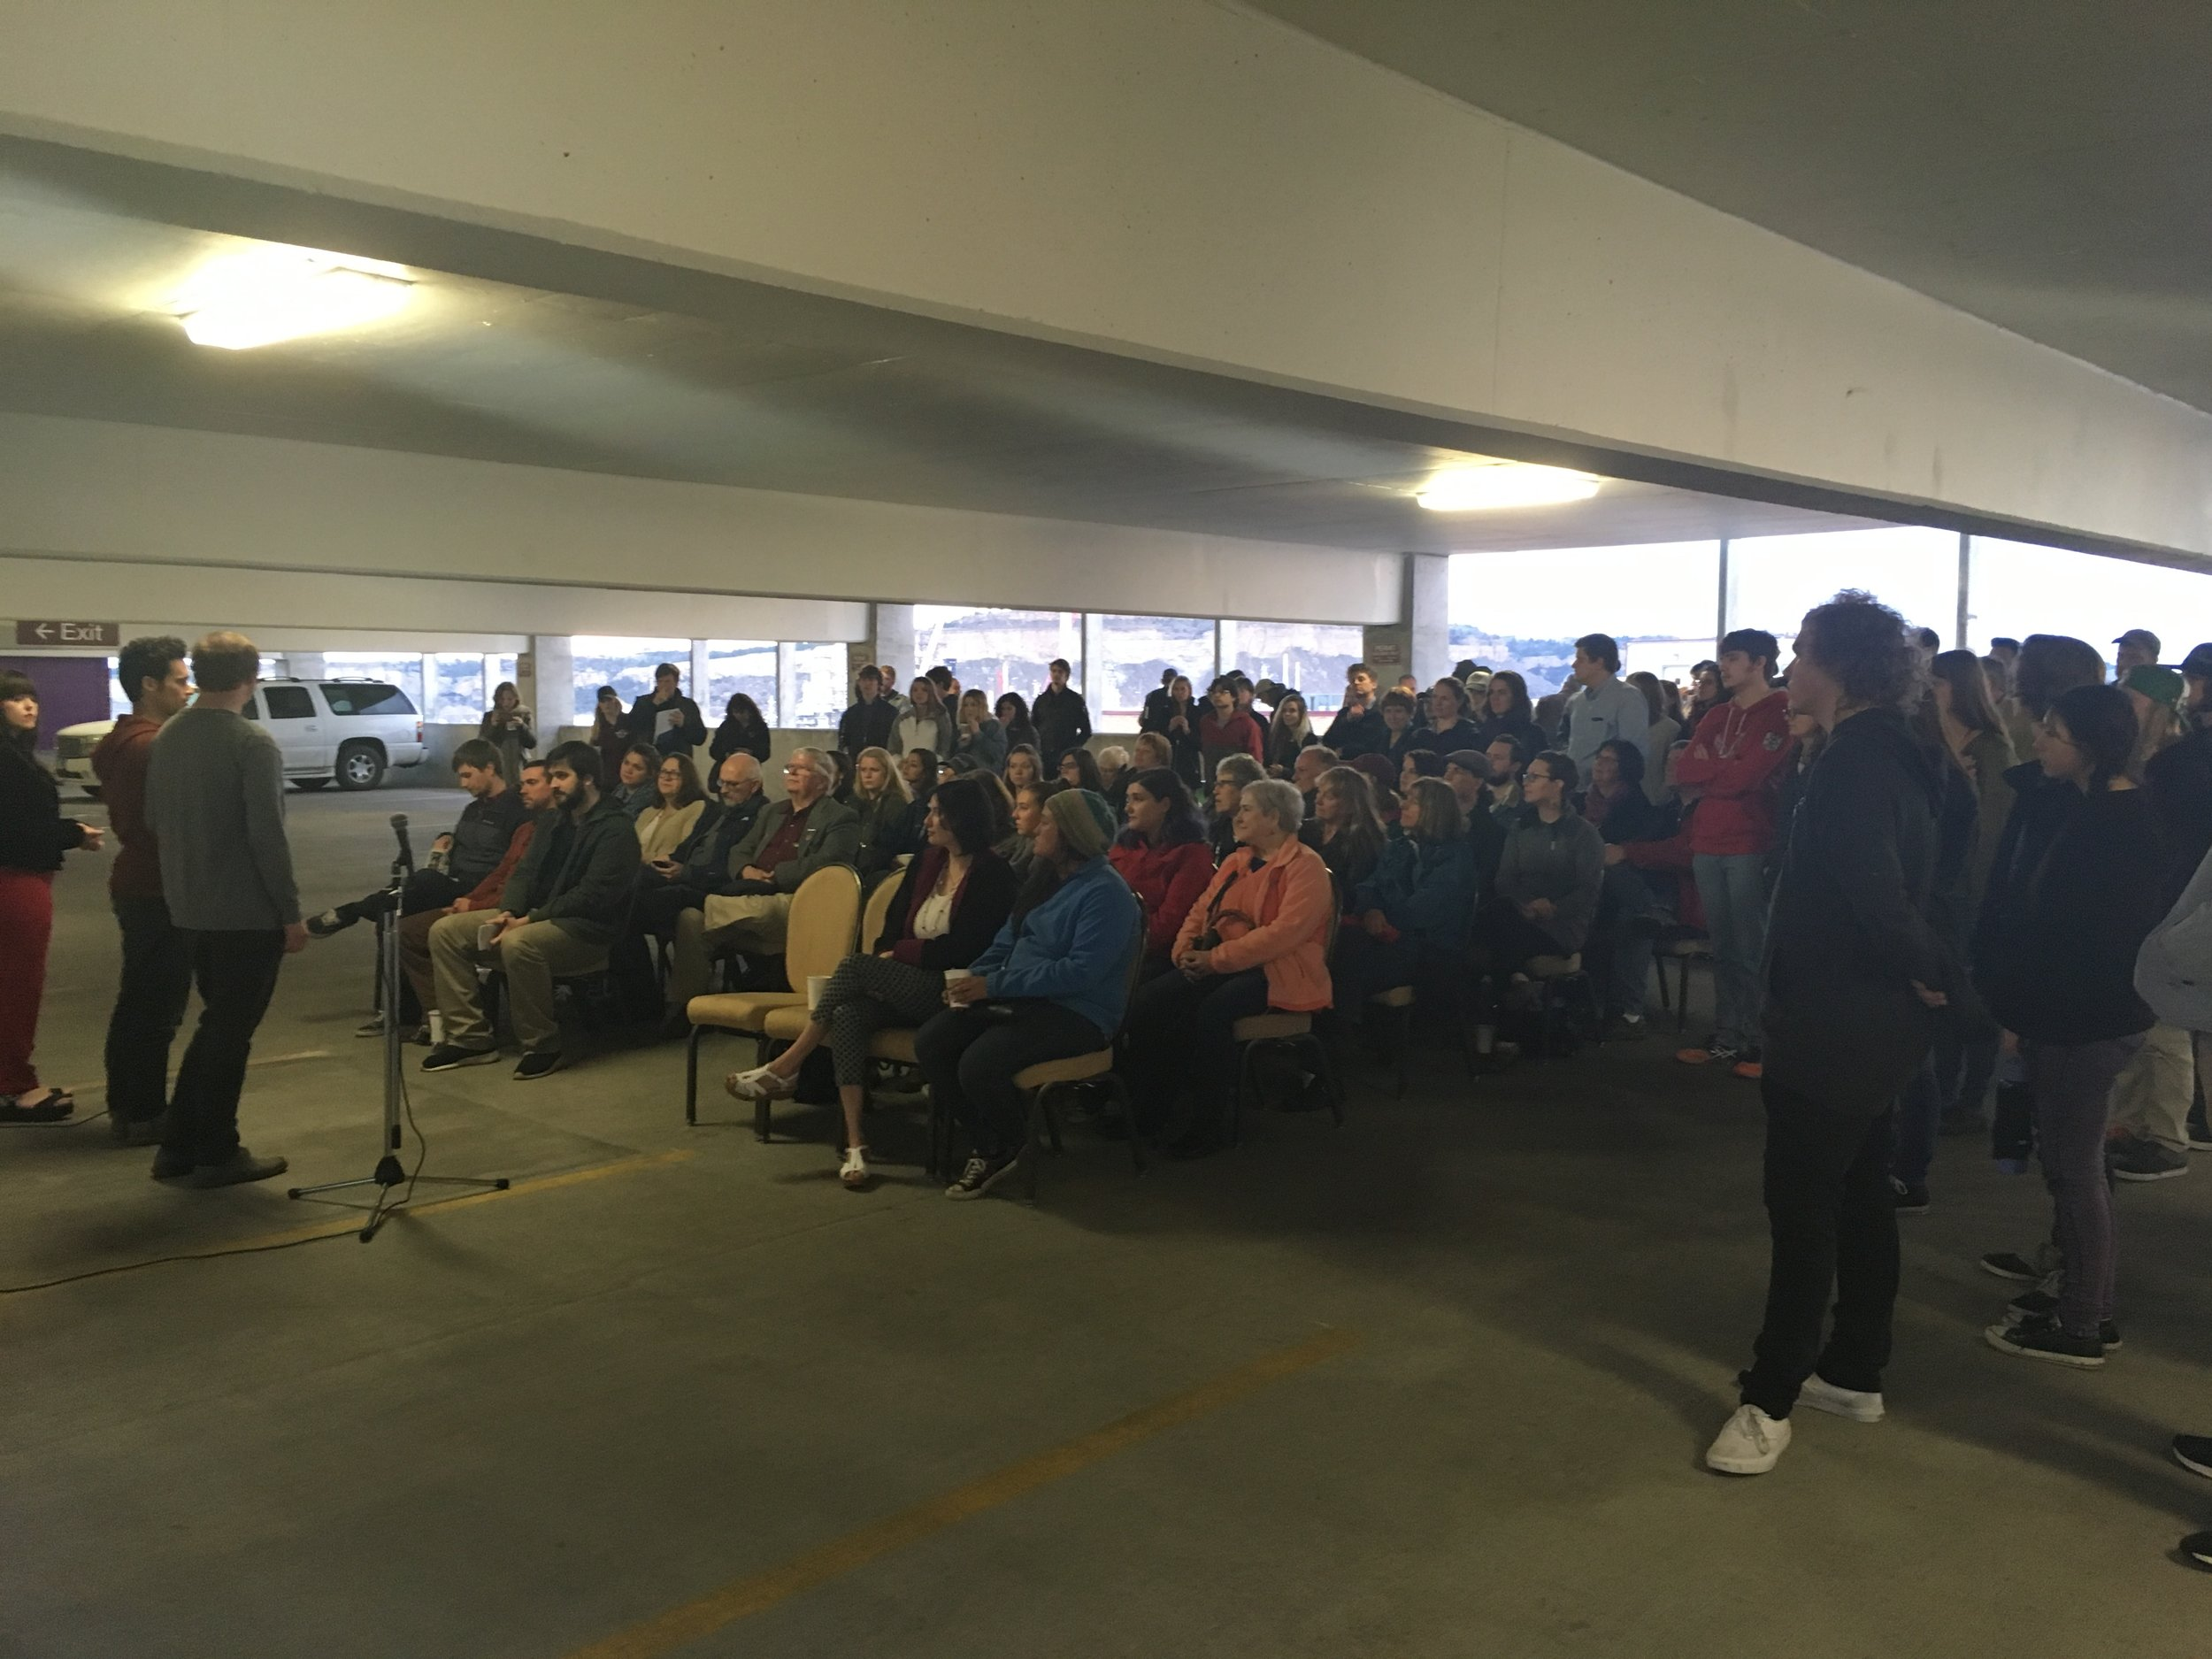 At our first pop-up event, over 100 people gathered to hear local poets perform in a parking garage.